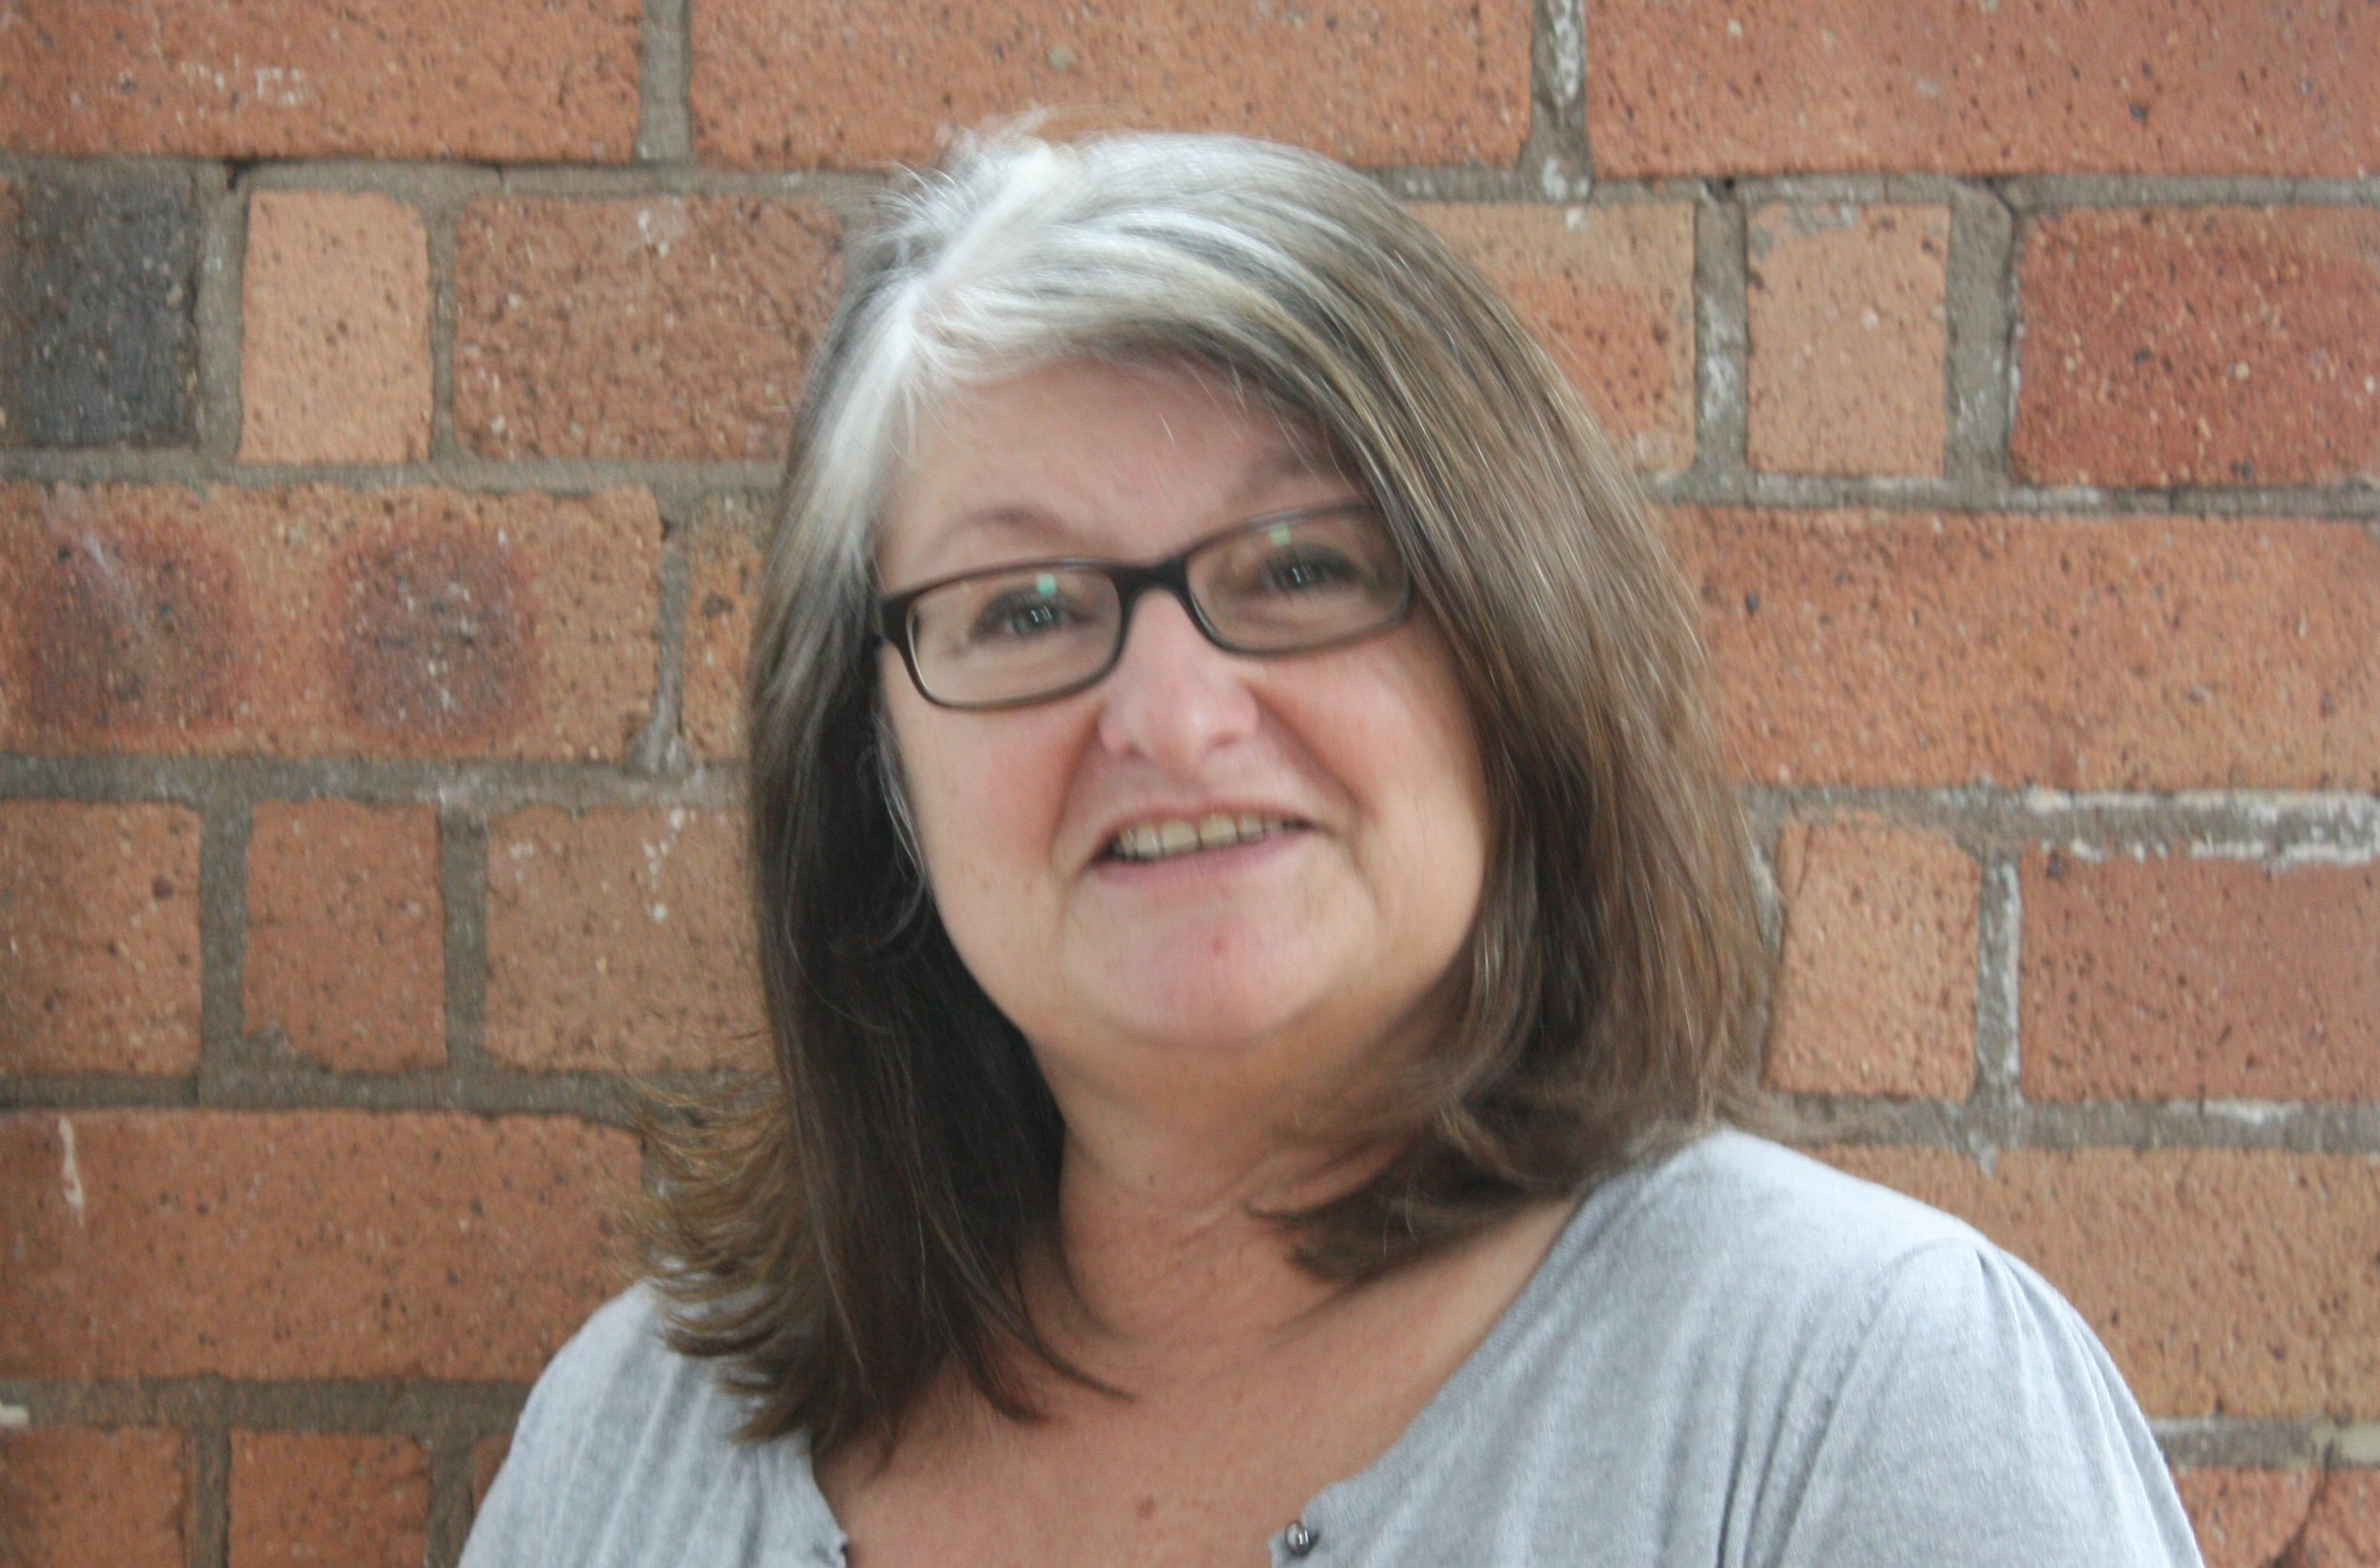 Celia Jenkins, Team Leader   Celia is in charge of our very own Salaried School Direct course and plays an inspirational and supportive role as a mentor for SCITT trainees for the Cabot Learning Federation. She demonstrates an empathetic and intuitive approach to both individual and group mentoring in numerous settings.